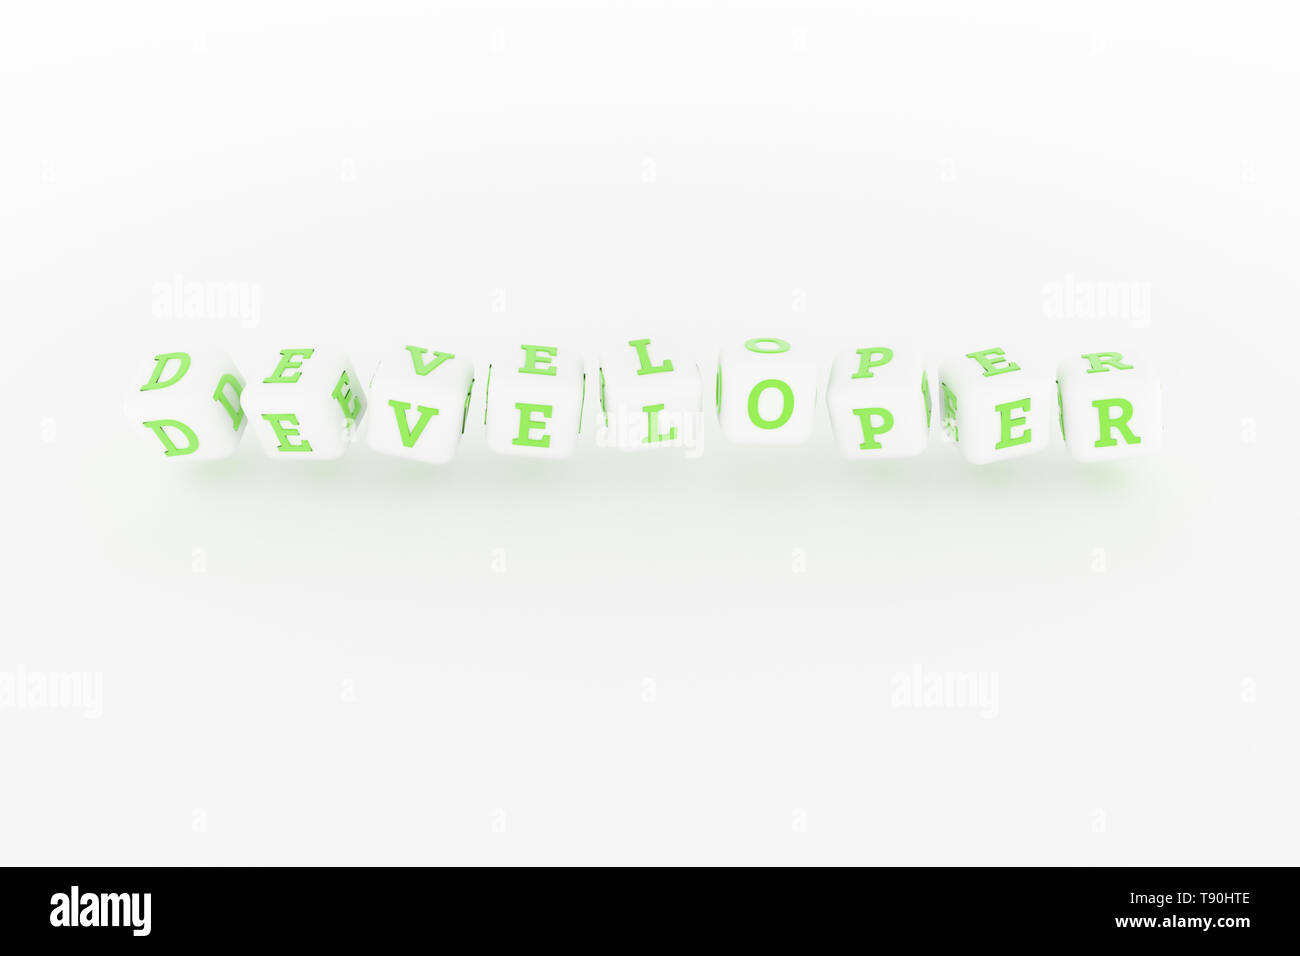 Developer computer ICT keyword. Graphic resource, texture or background, for web page or design. - Stock Image